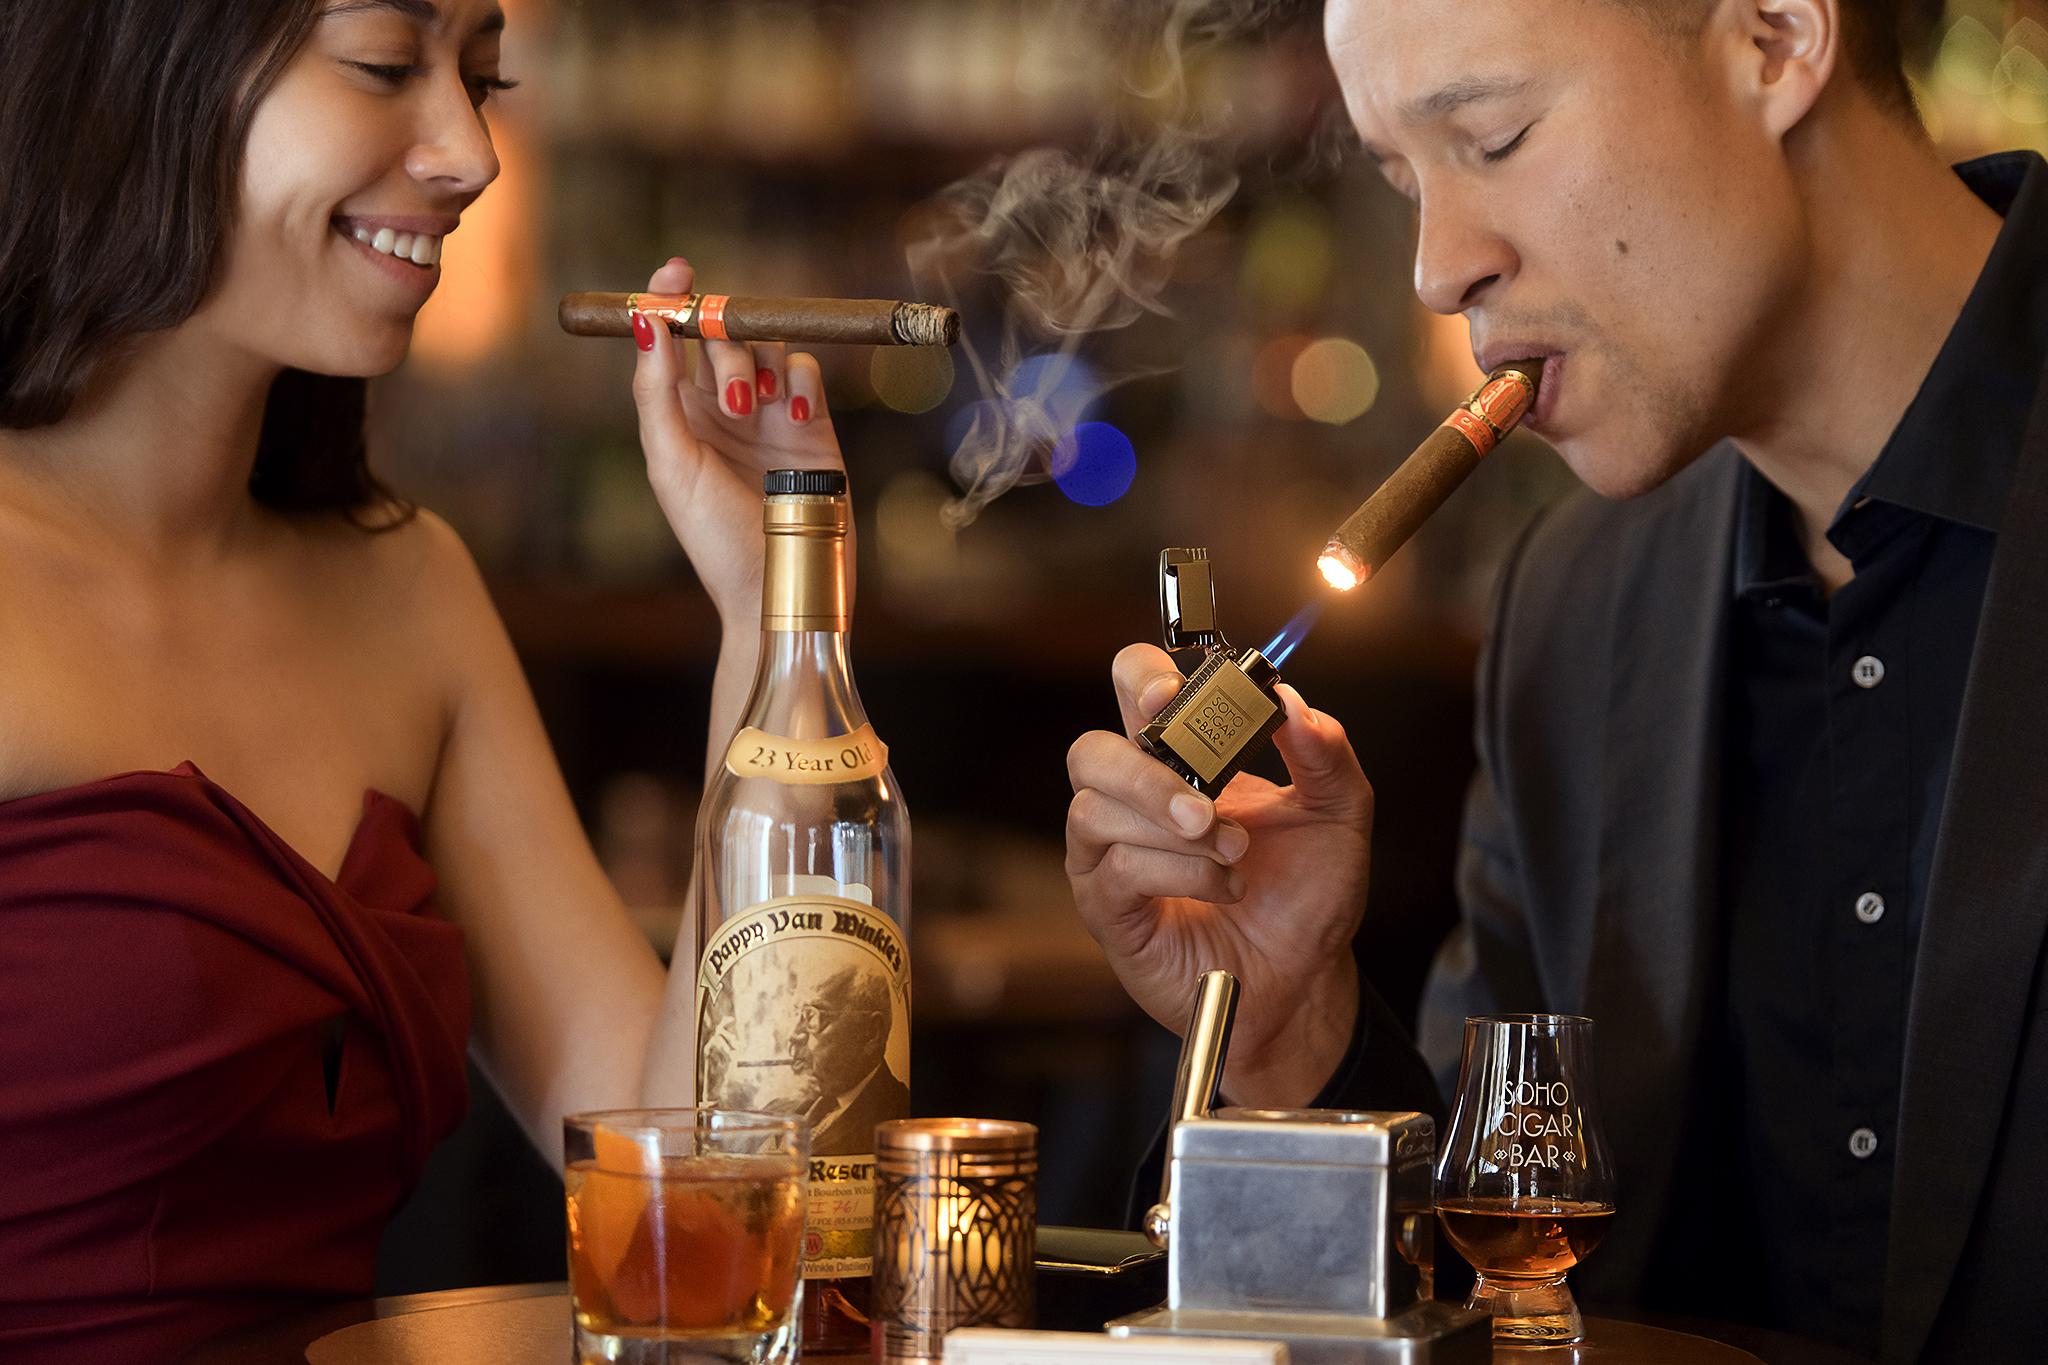 SOHO CIGAR BAR — SOHO CIGAR BAR